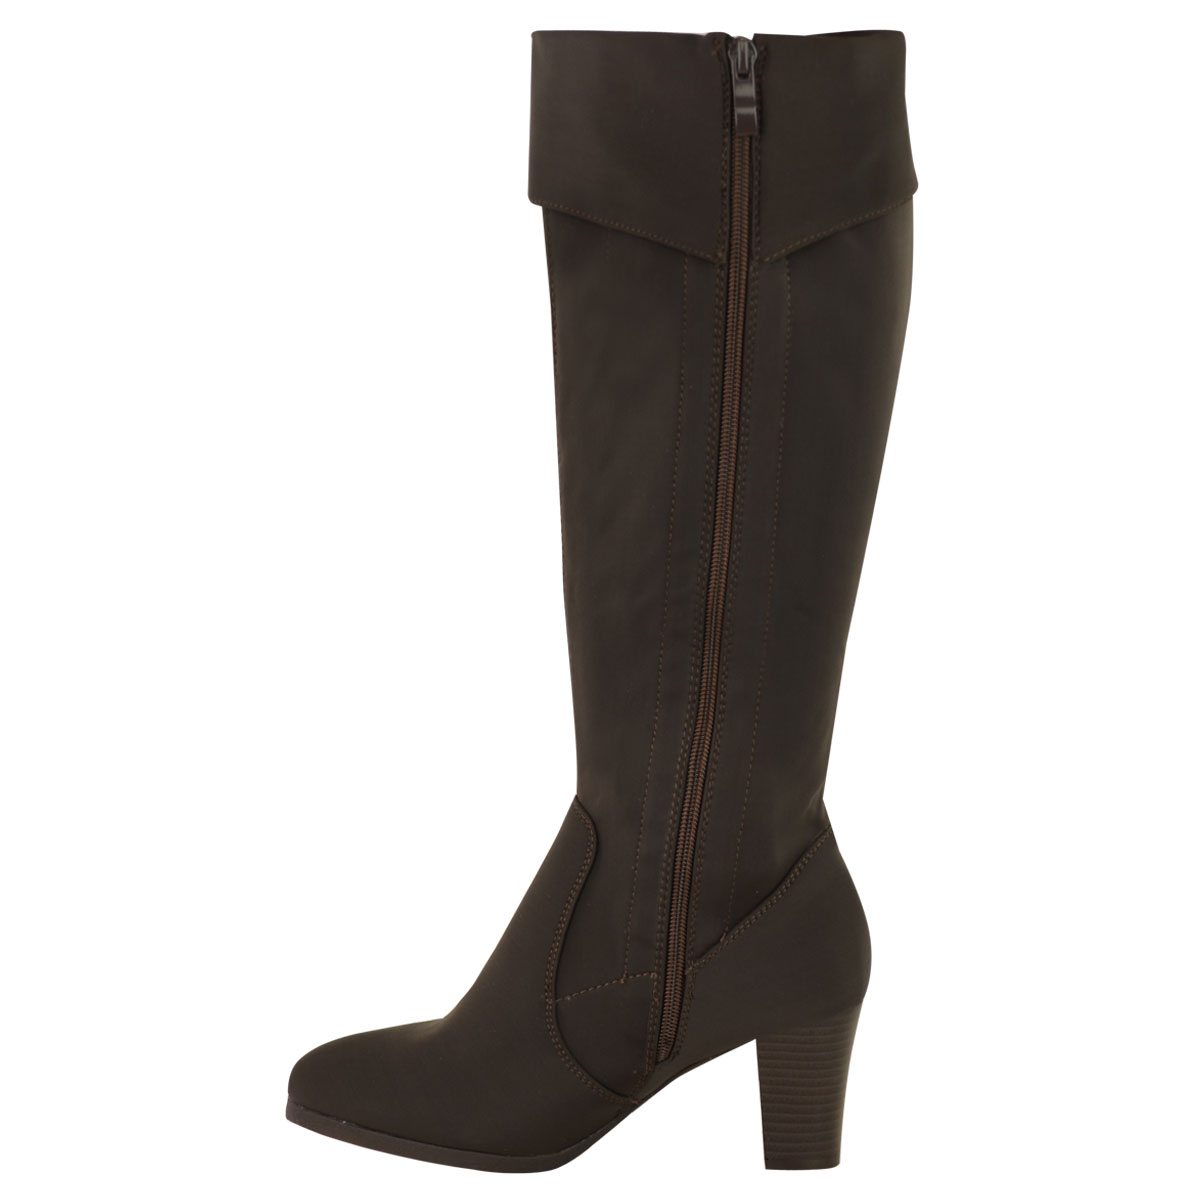 Popular LADIES WOMENS WIDE LEG STRETCH KNEE HIGH HEEL MID STILETTO BOOTS MID CALF SIZE | EBay